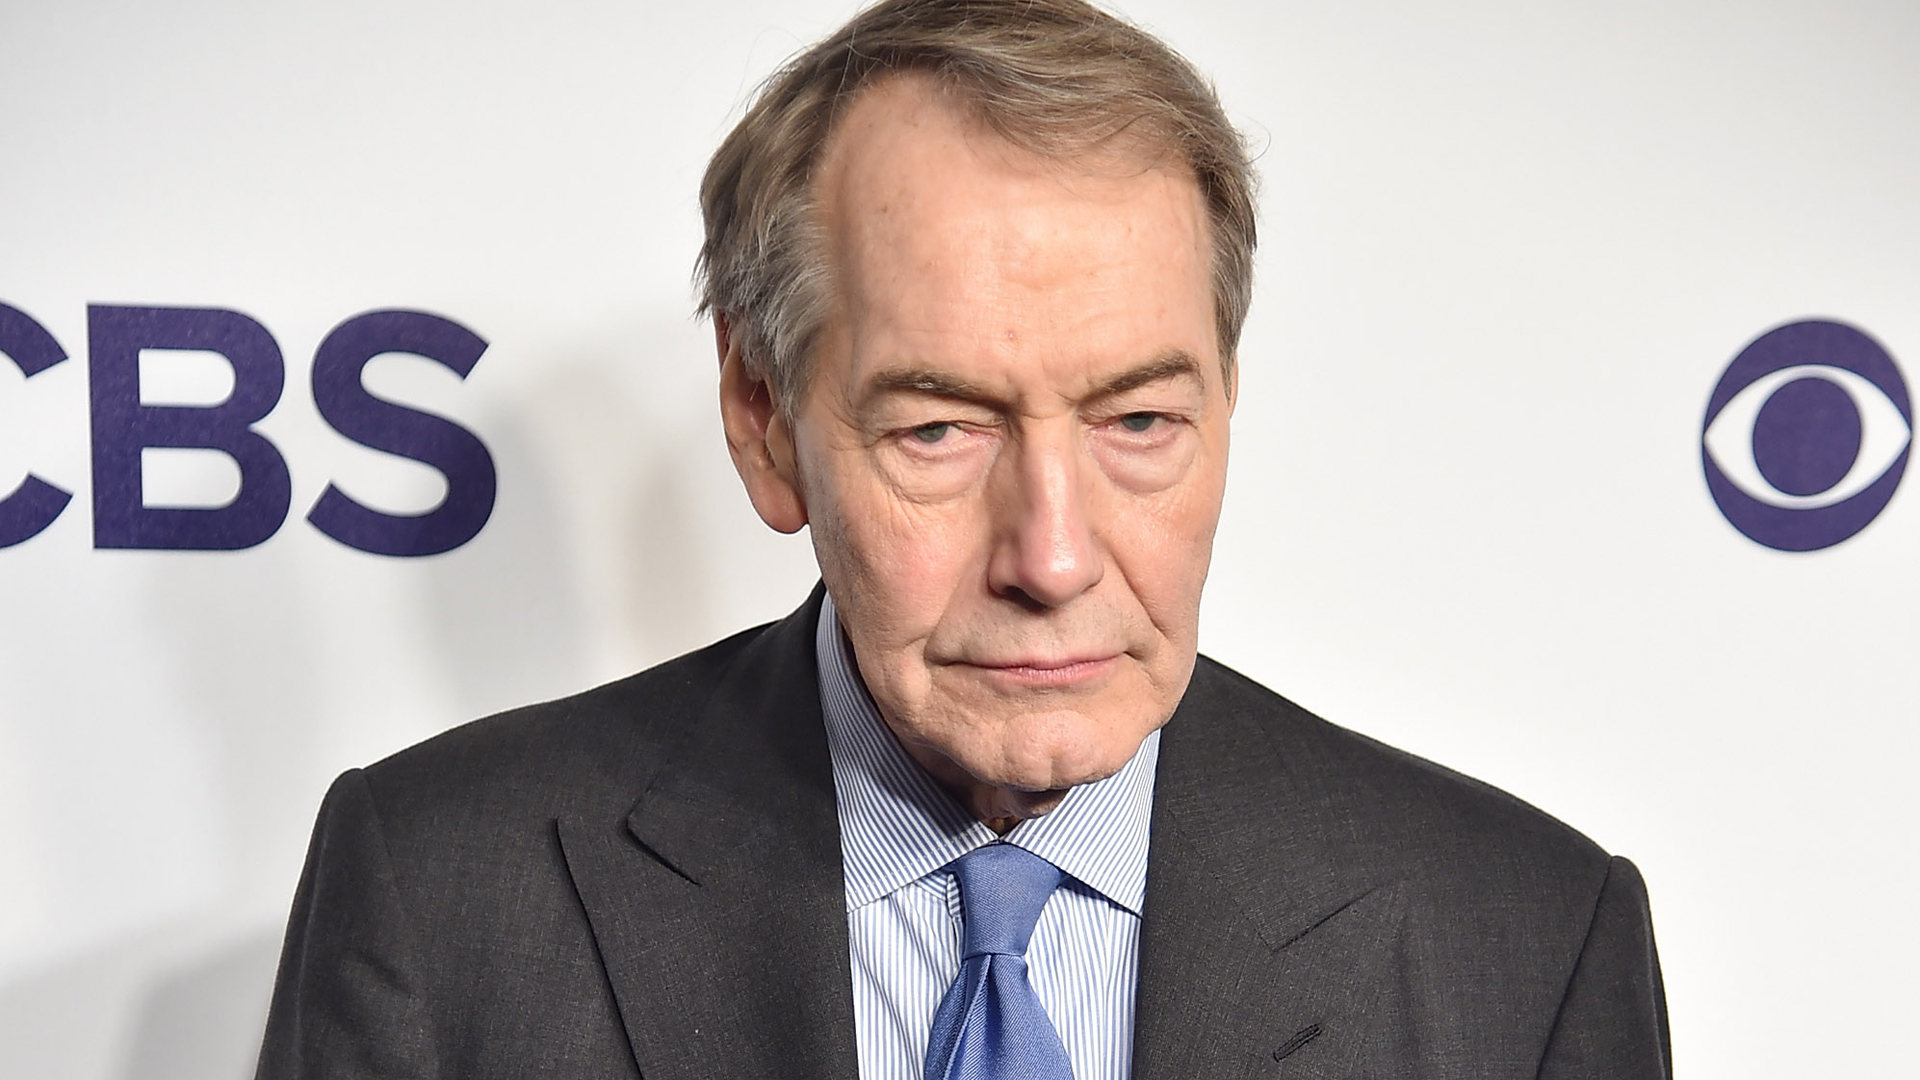 Charlie Rose attends the 2017 CBS Upfront on May 17, 2017 in New York City. (Credit: Theo Wargo/Getty Images)